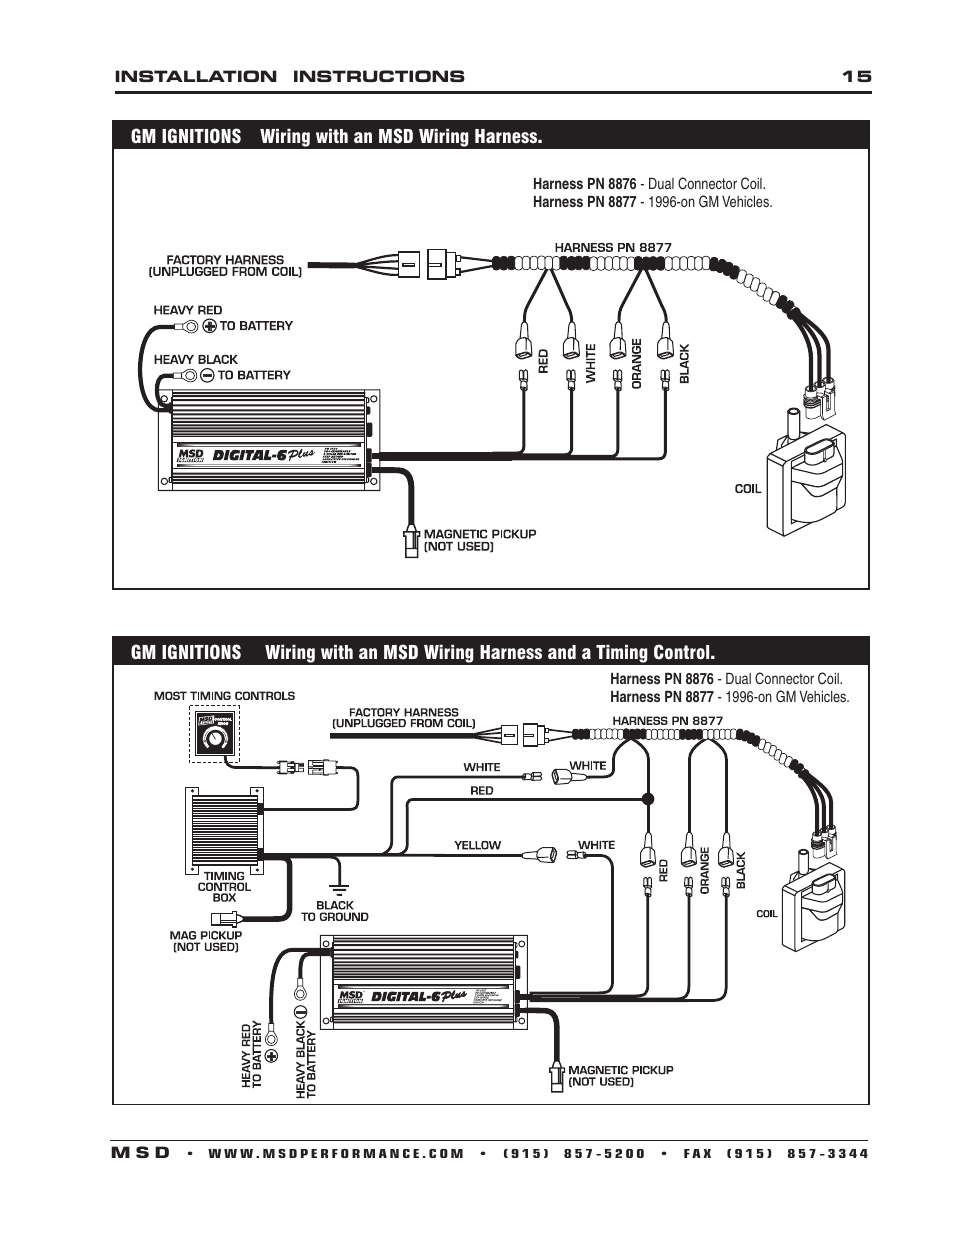 medium resolution of msd 6520 digital 6 plus ignition control installation user manual page 15 24